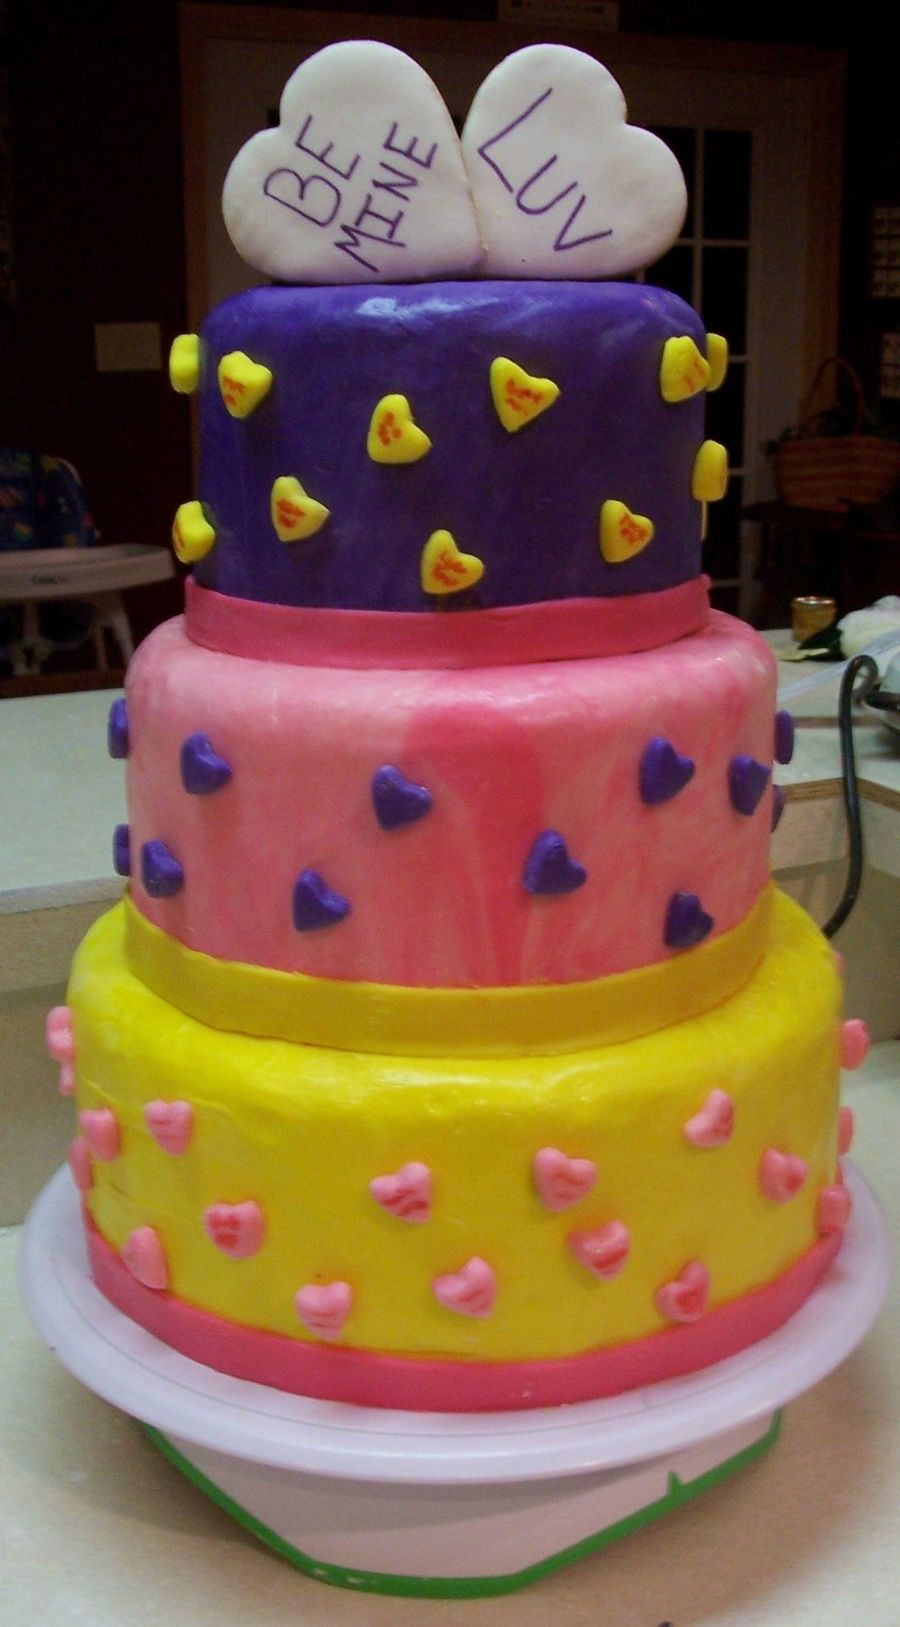 Candy Heart Cake on Cake Central